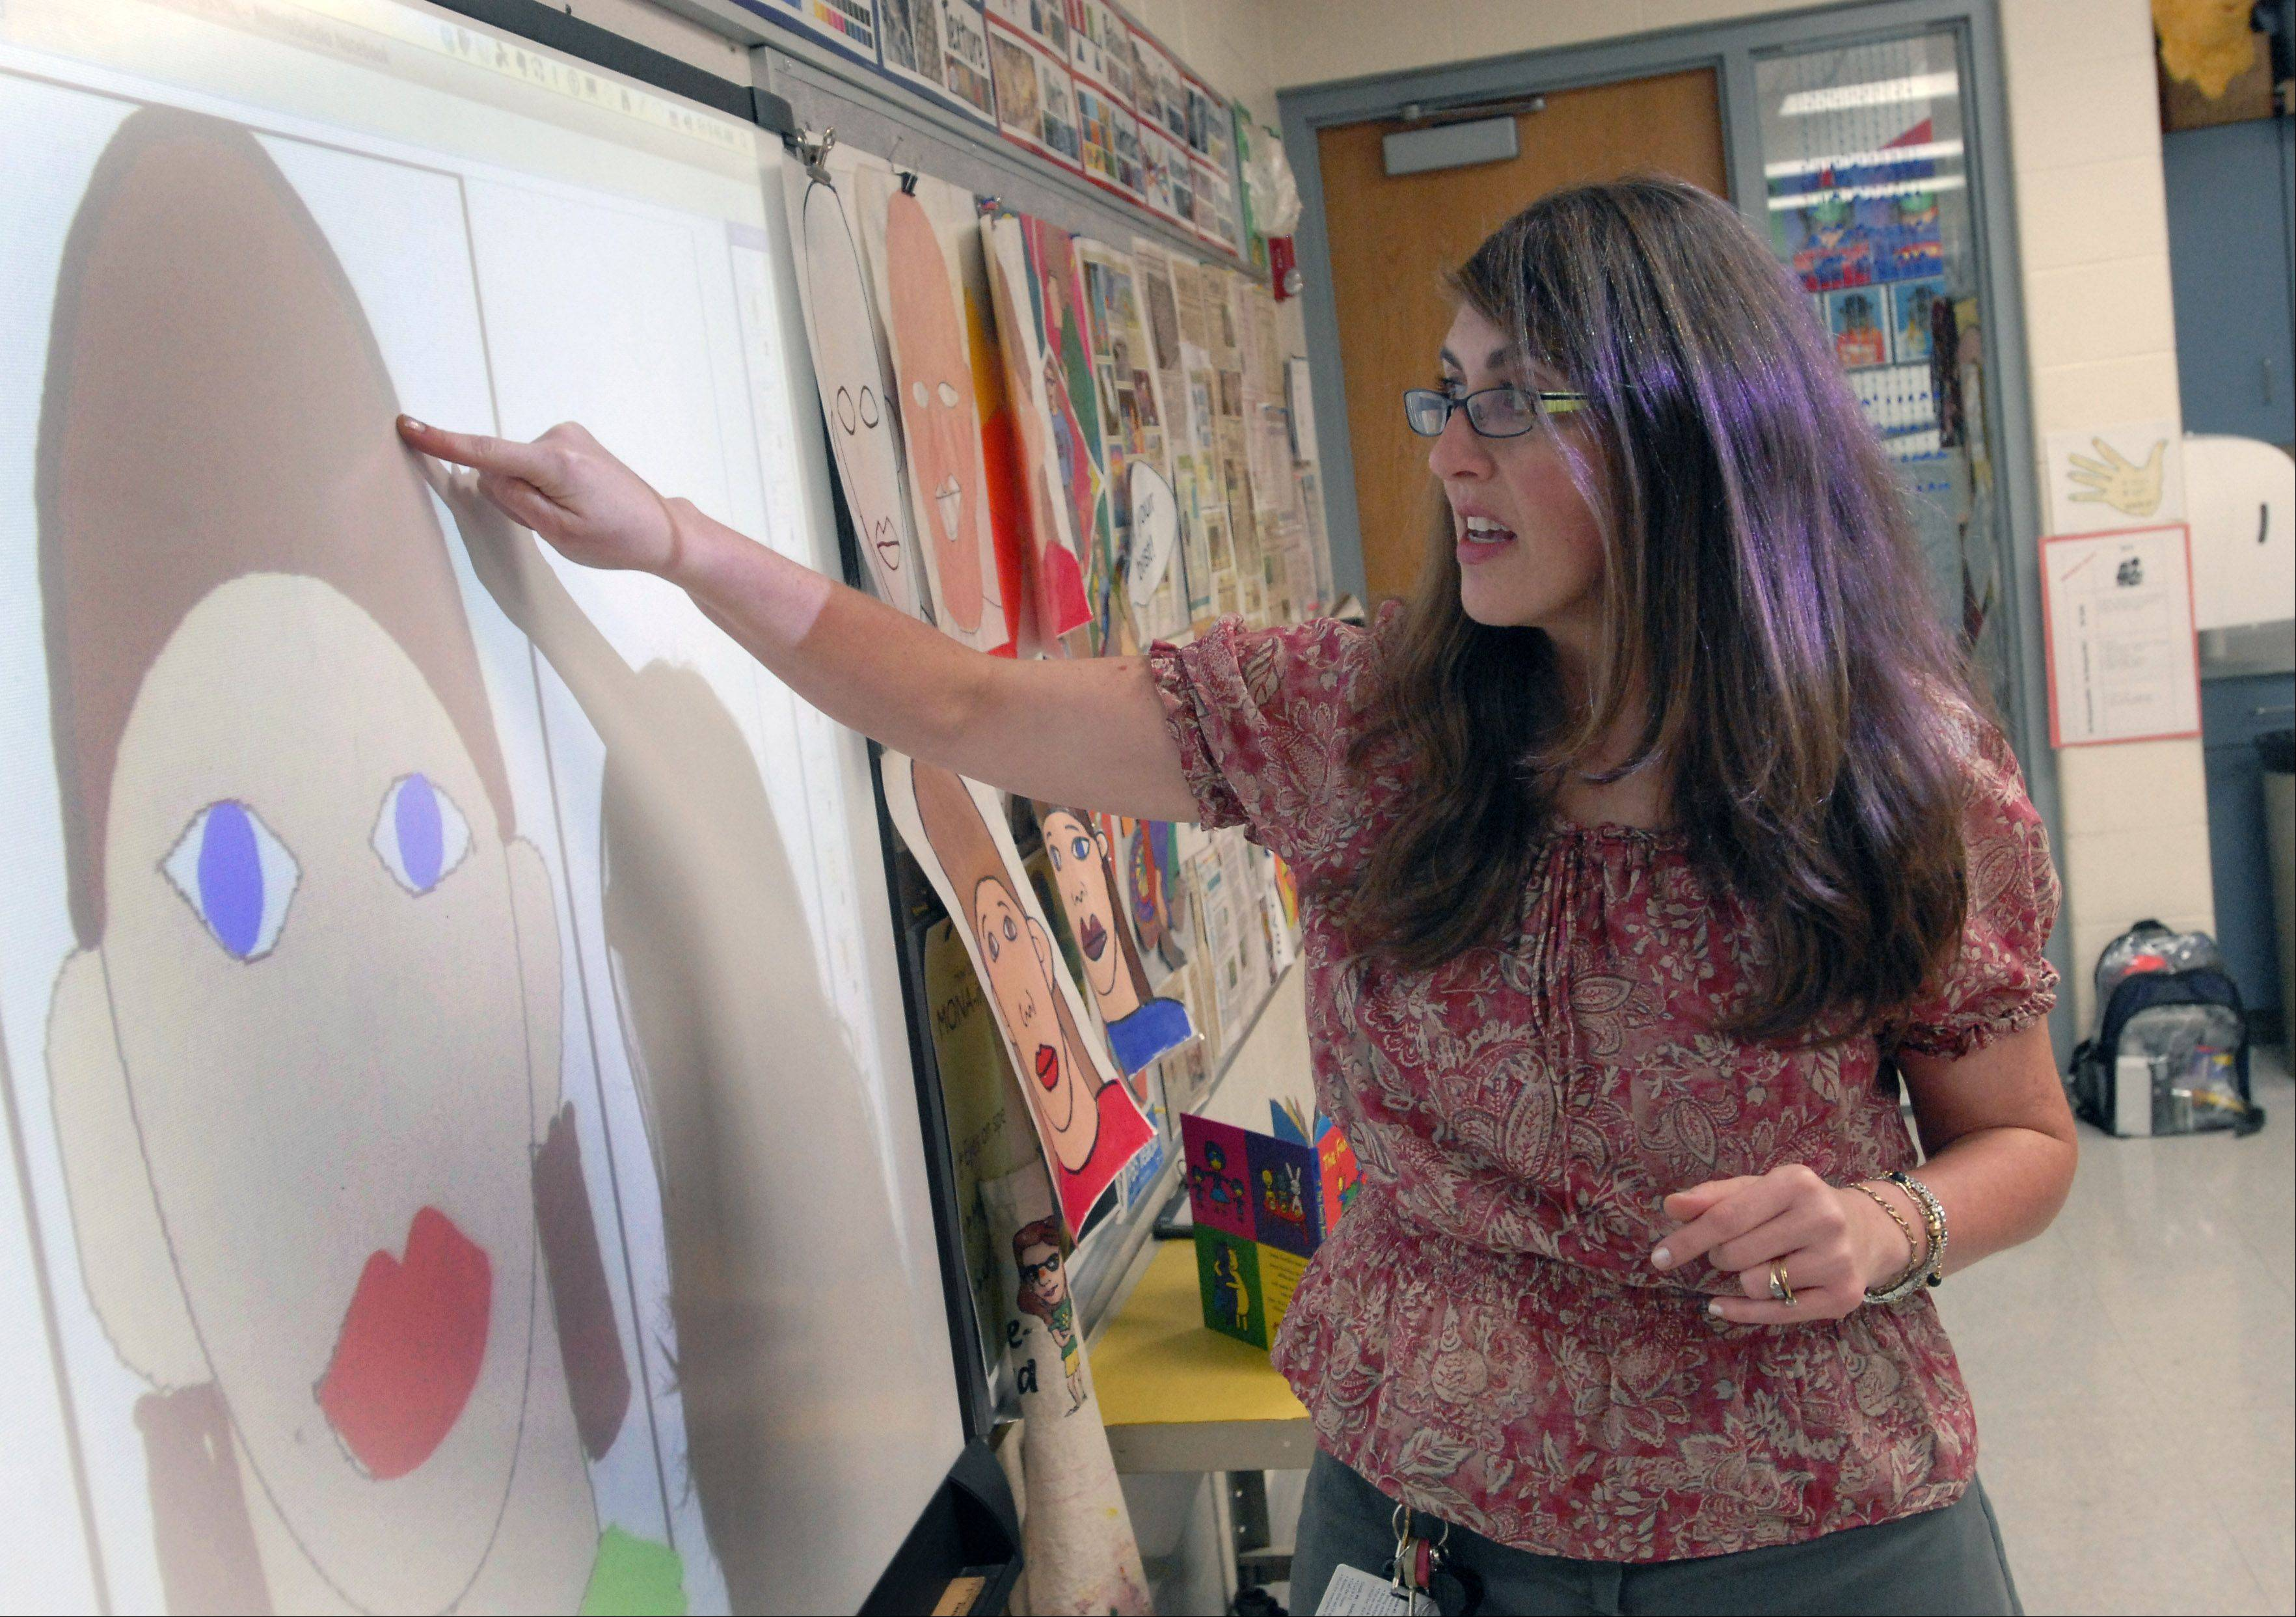 Golden Apple finalist Tricia Fuglestad teaches kindergartners how to do self-portraits at Dryden School in Arlington Heights.